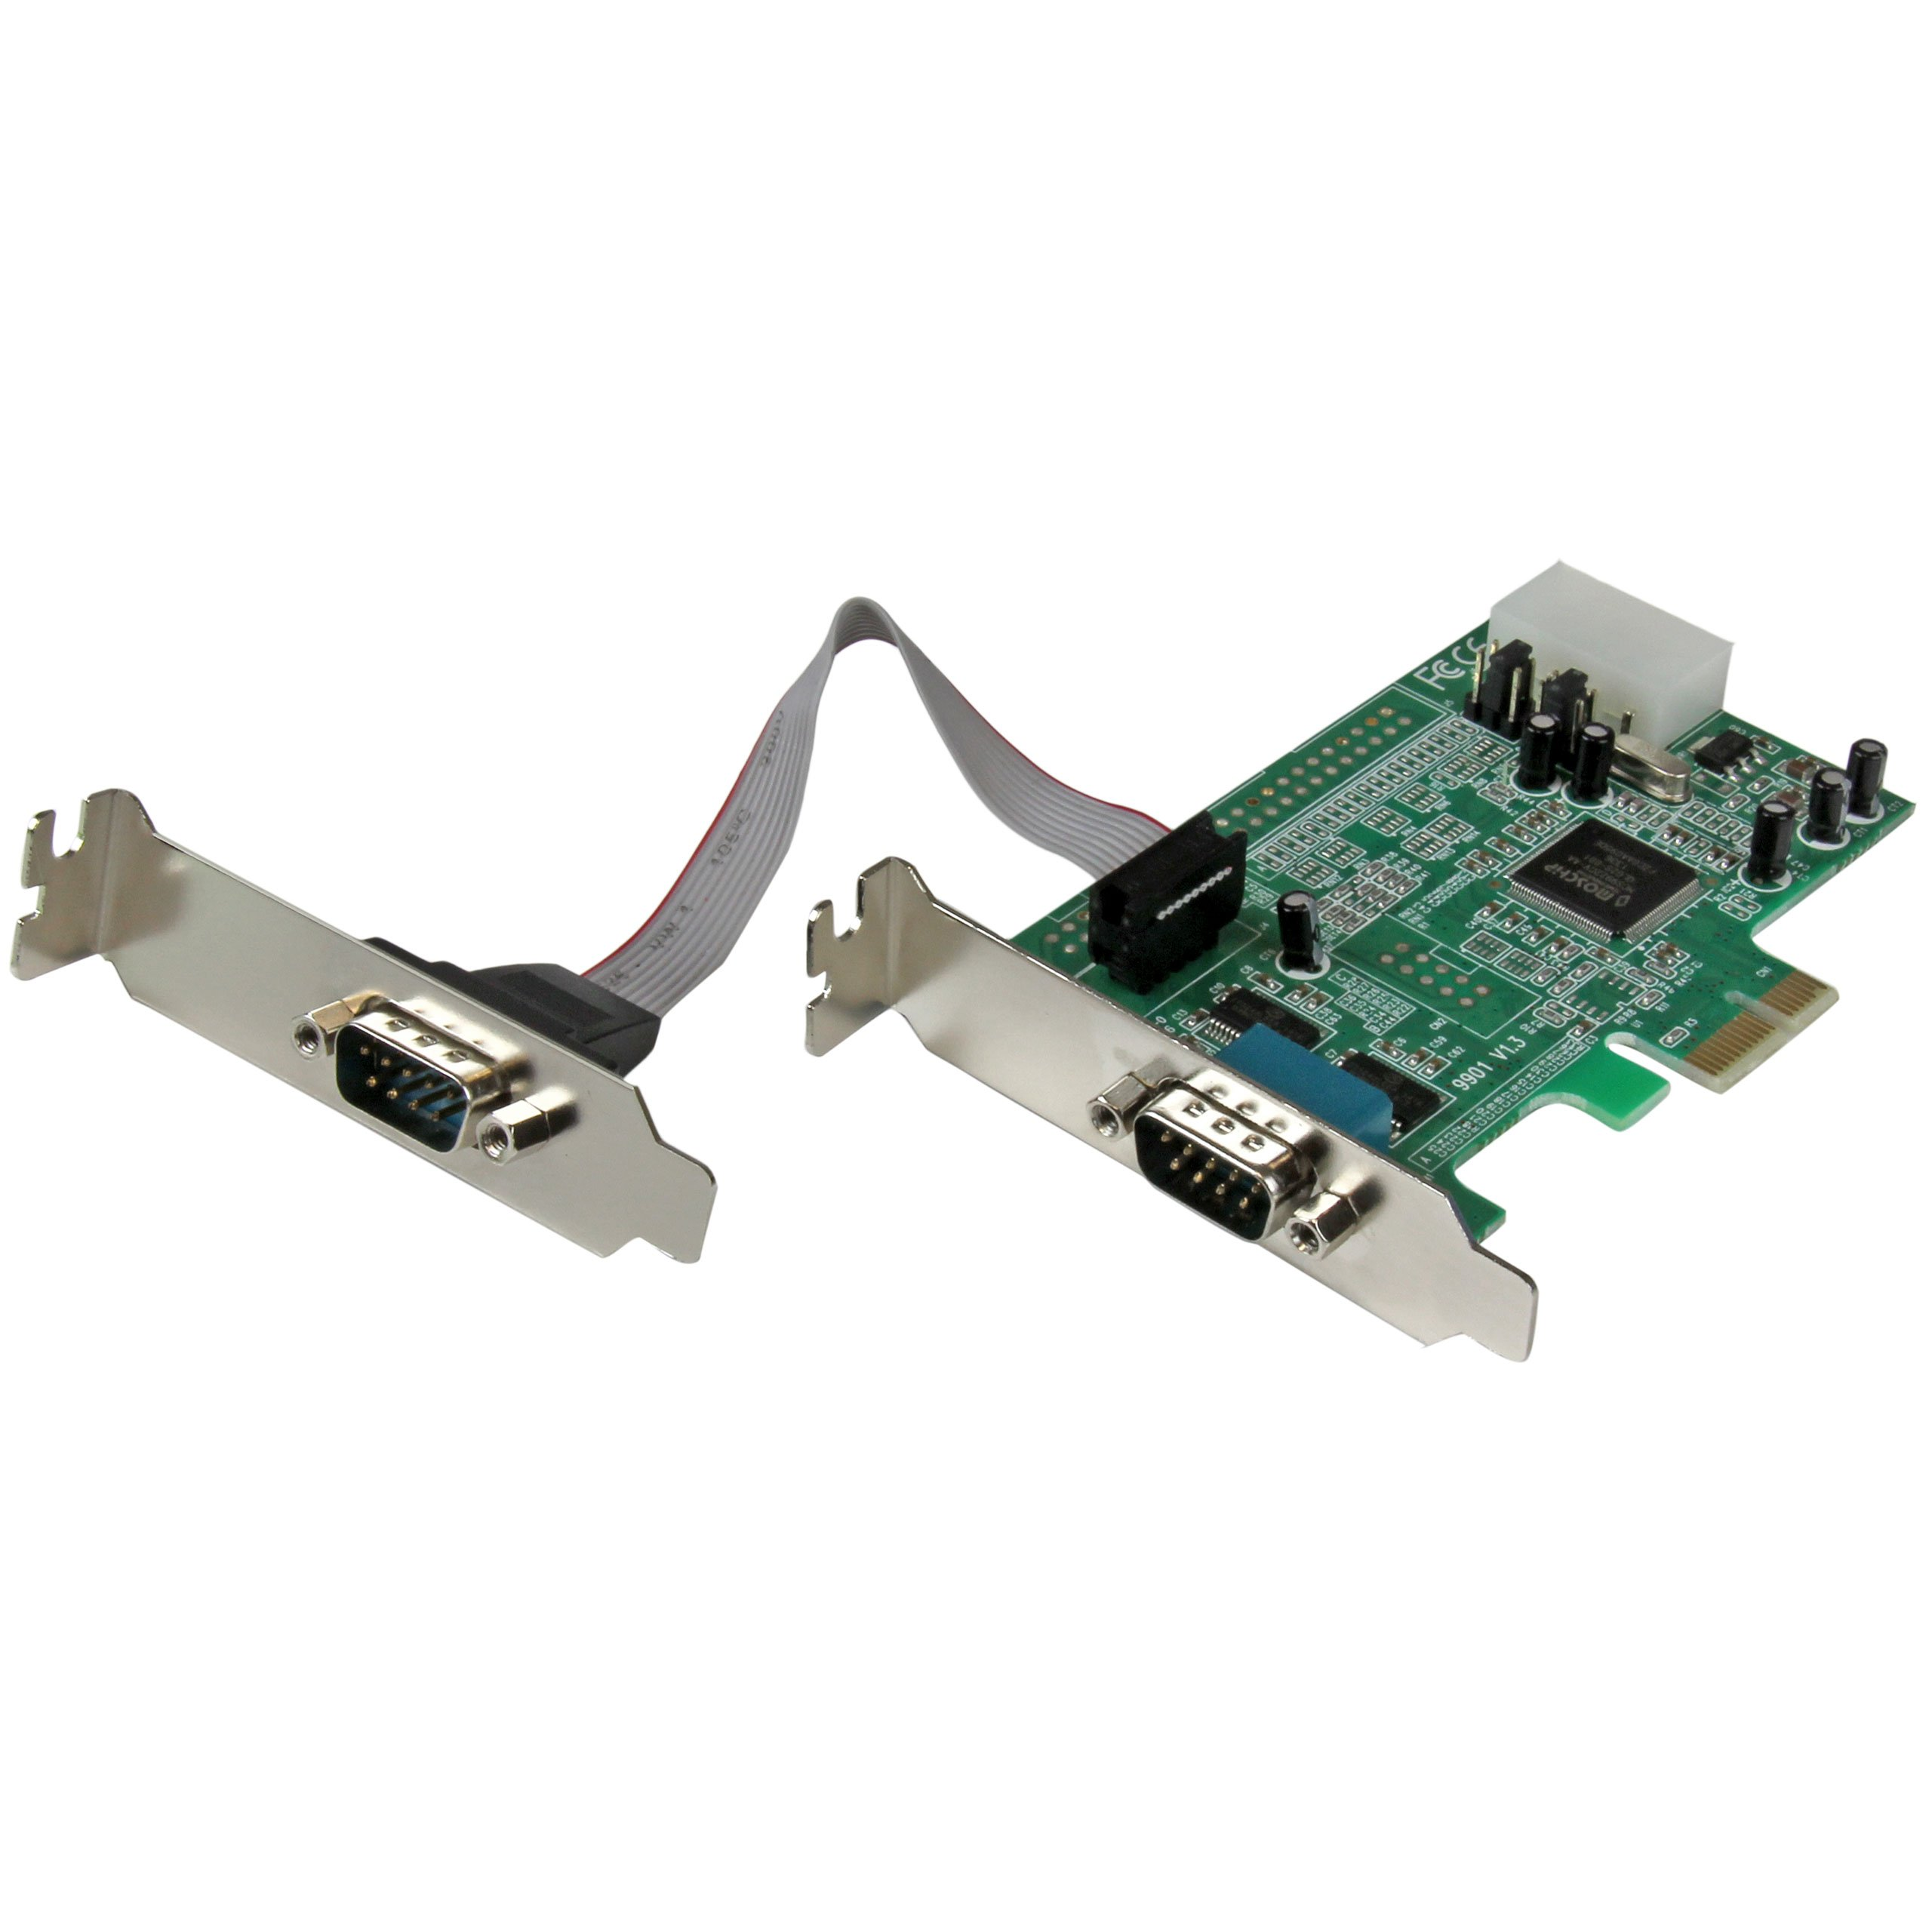 StarTech.com 2 Port Low Profile Native RS232 PCI Express Serial Card with 16550 UART - PCIe RS232 - PCI-E Serial Card (PEX2S553LP) by StarTech